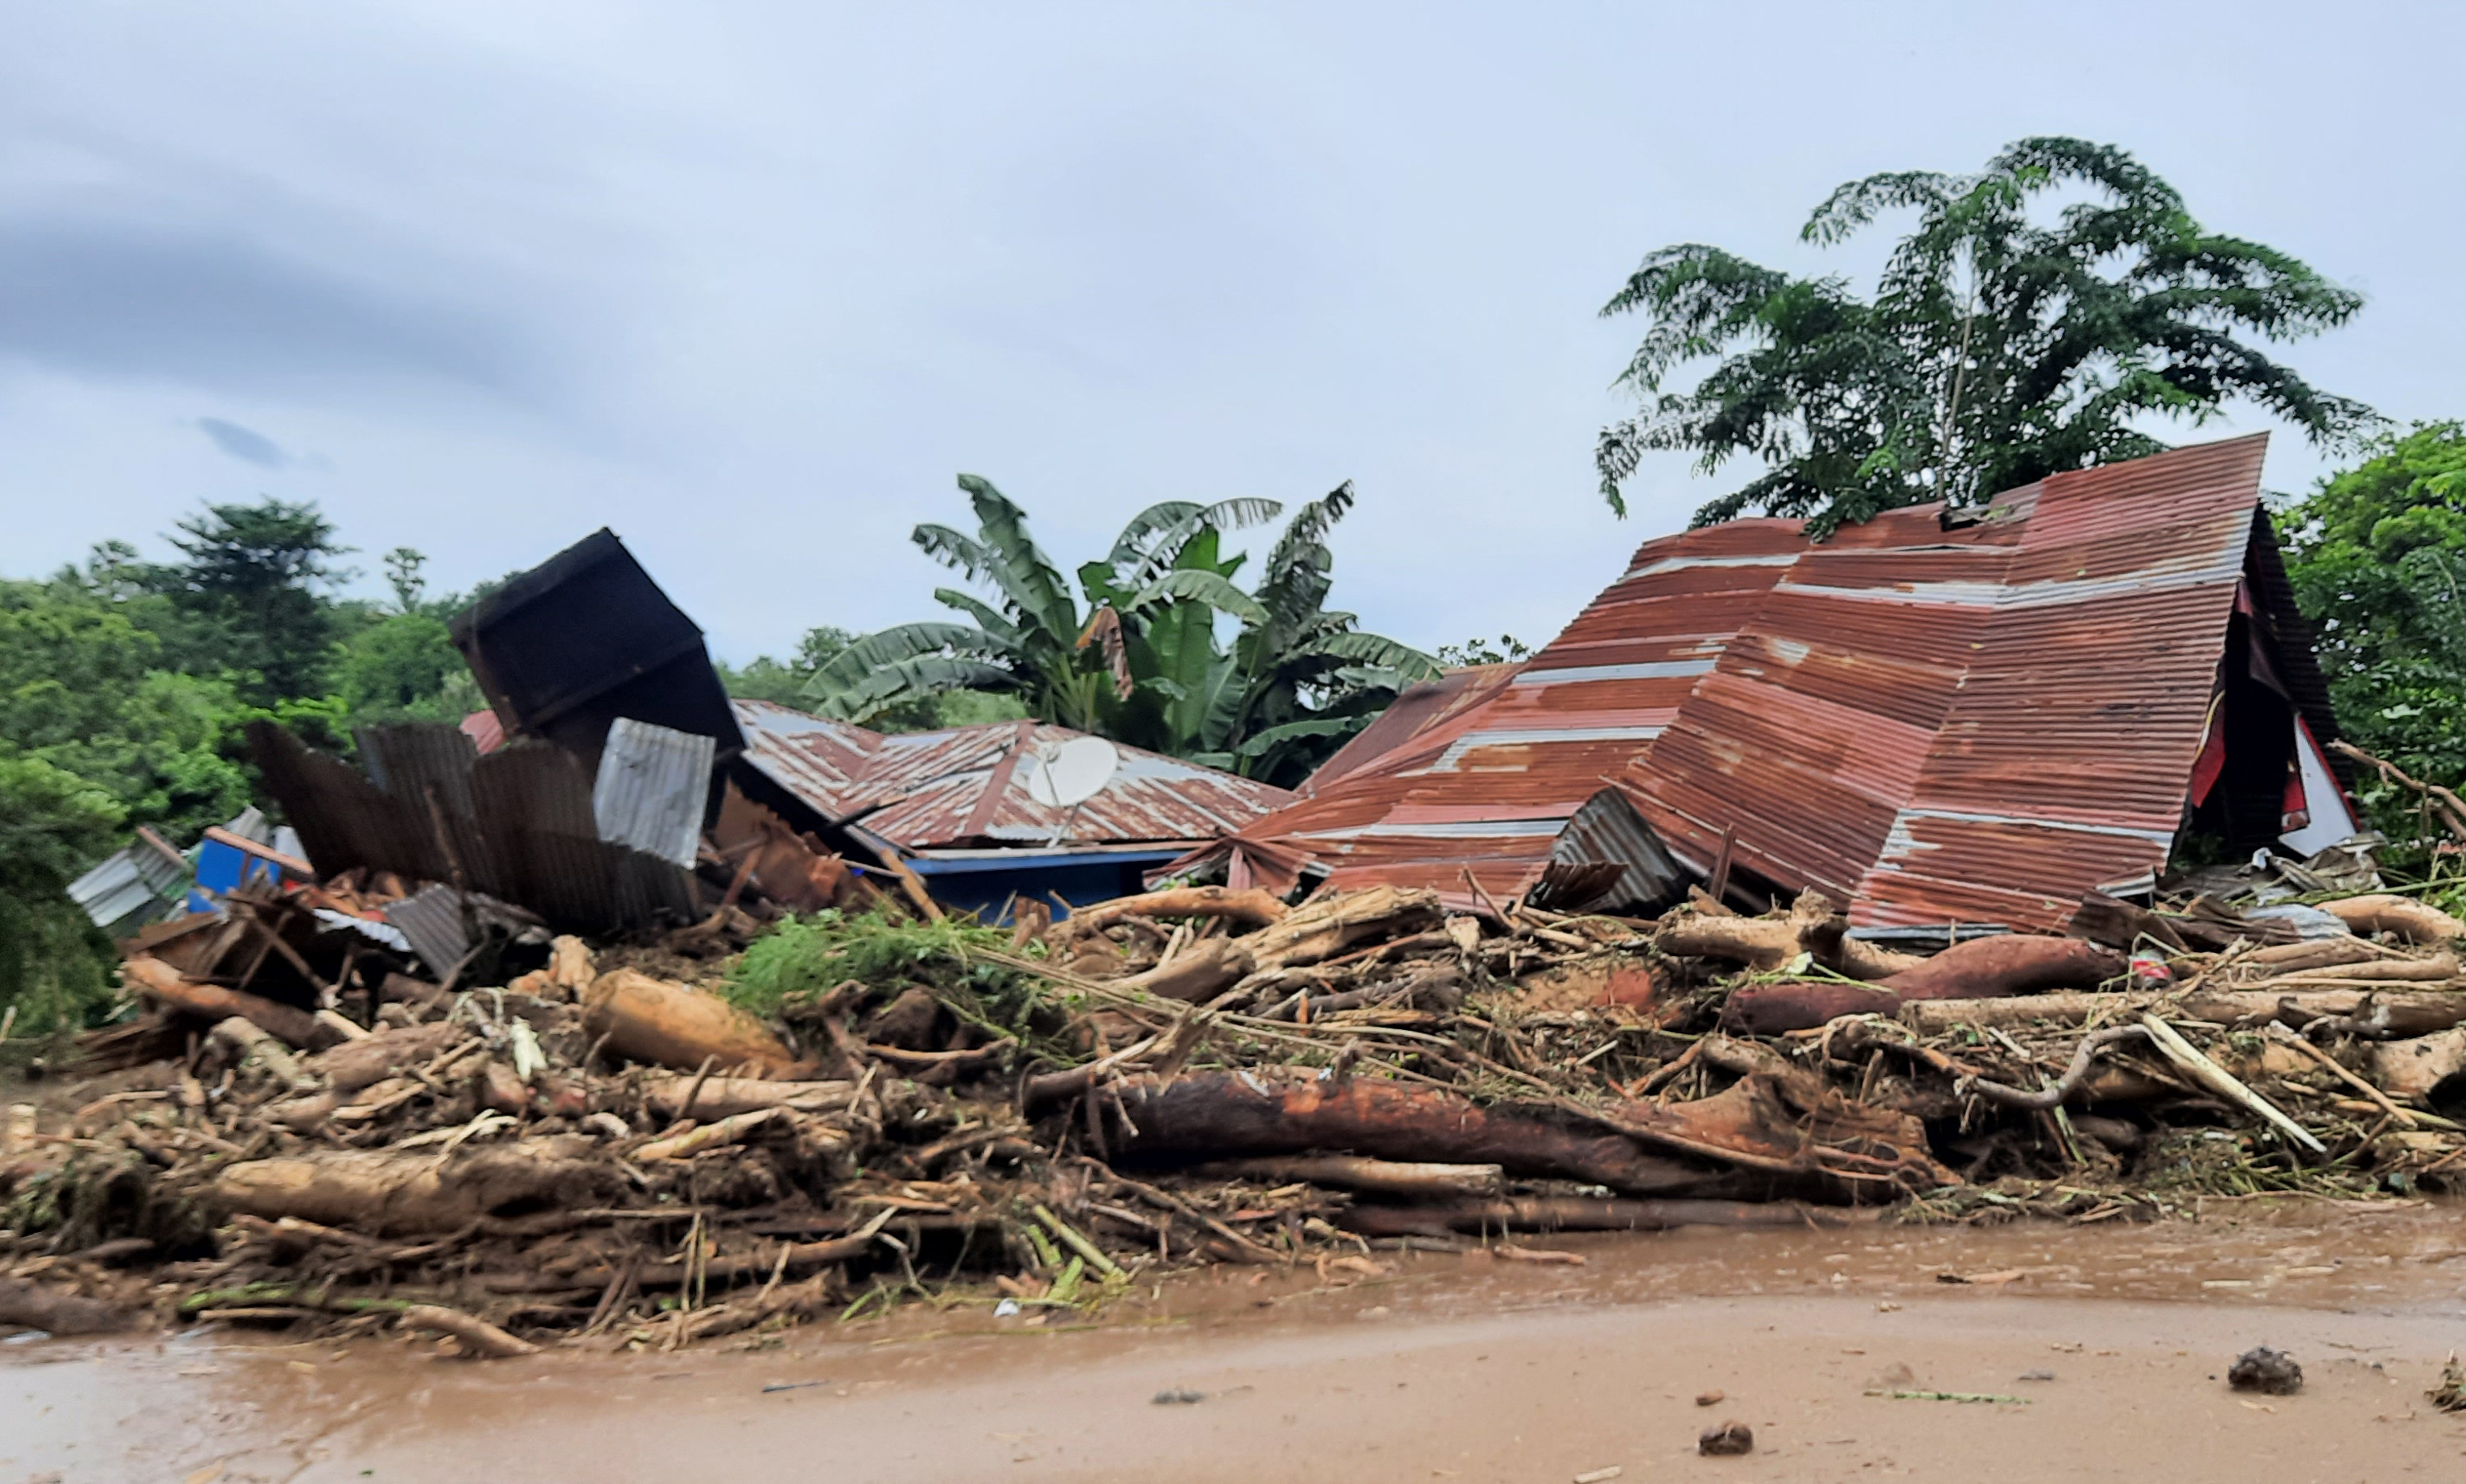 A home flattened by a cyclone.